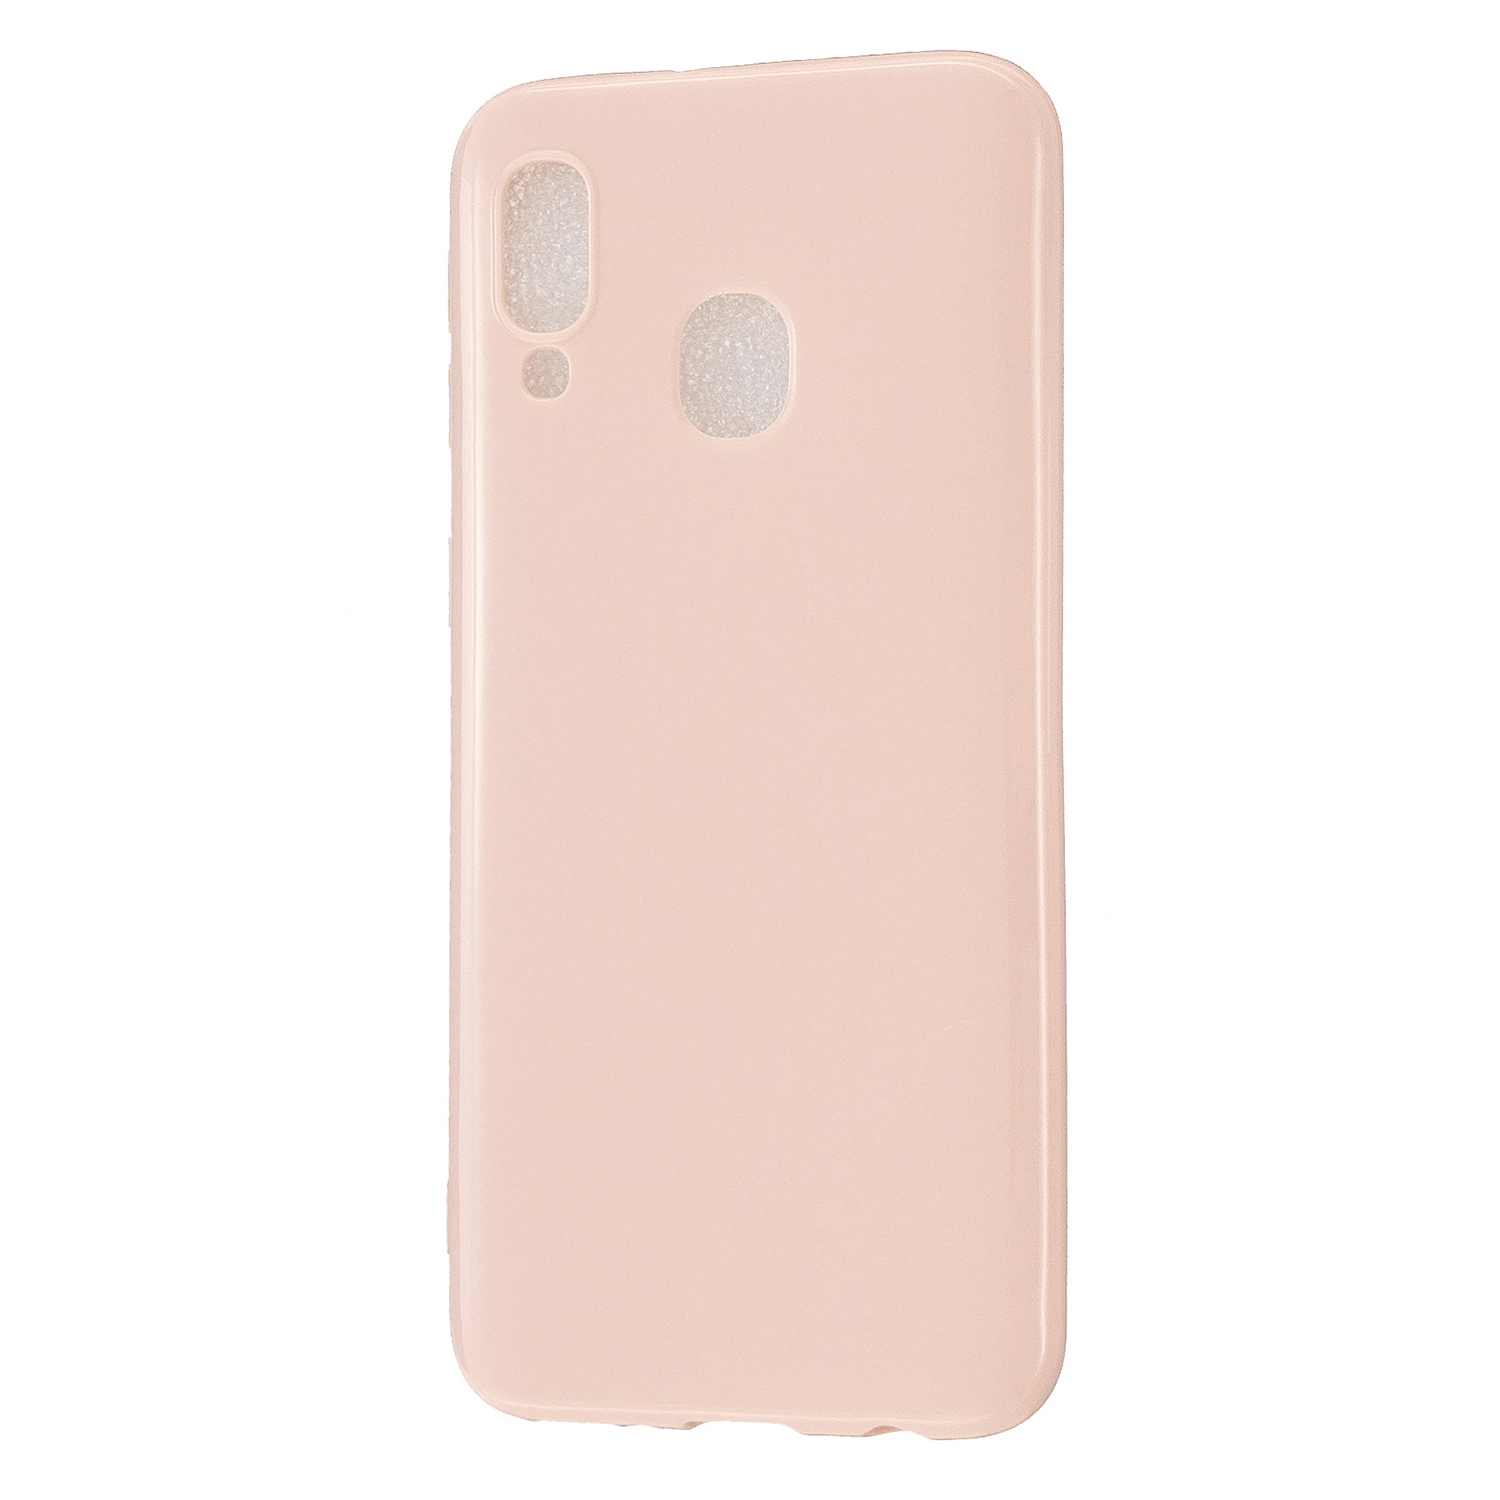 For Samsung A20E/A40/A70 Cellphone Cover Soft TPU Phone Case Simple Profile Scratch Resistant Full Body Protection Shell Sakura pink